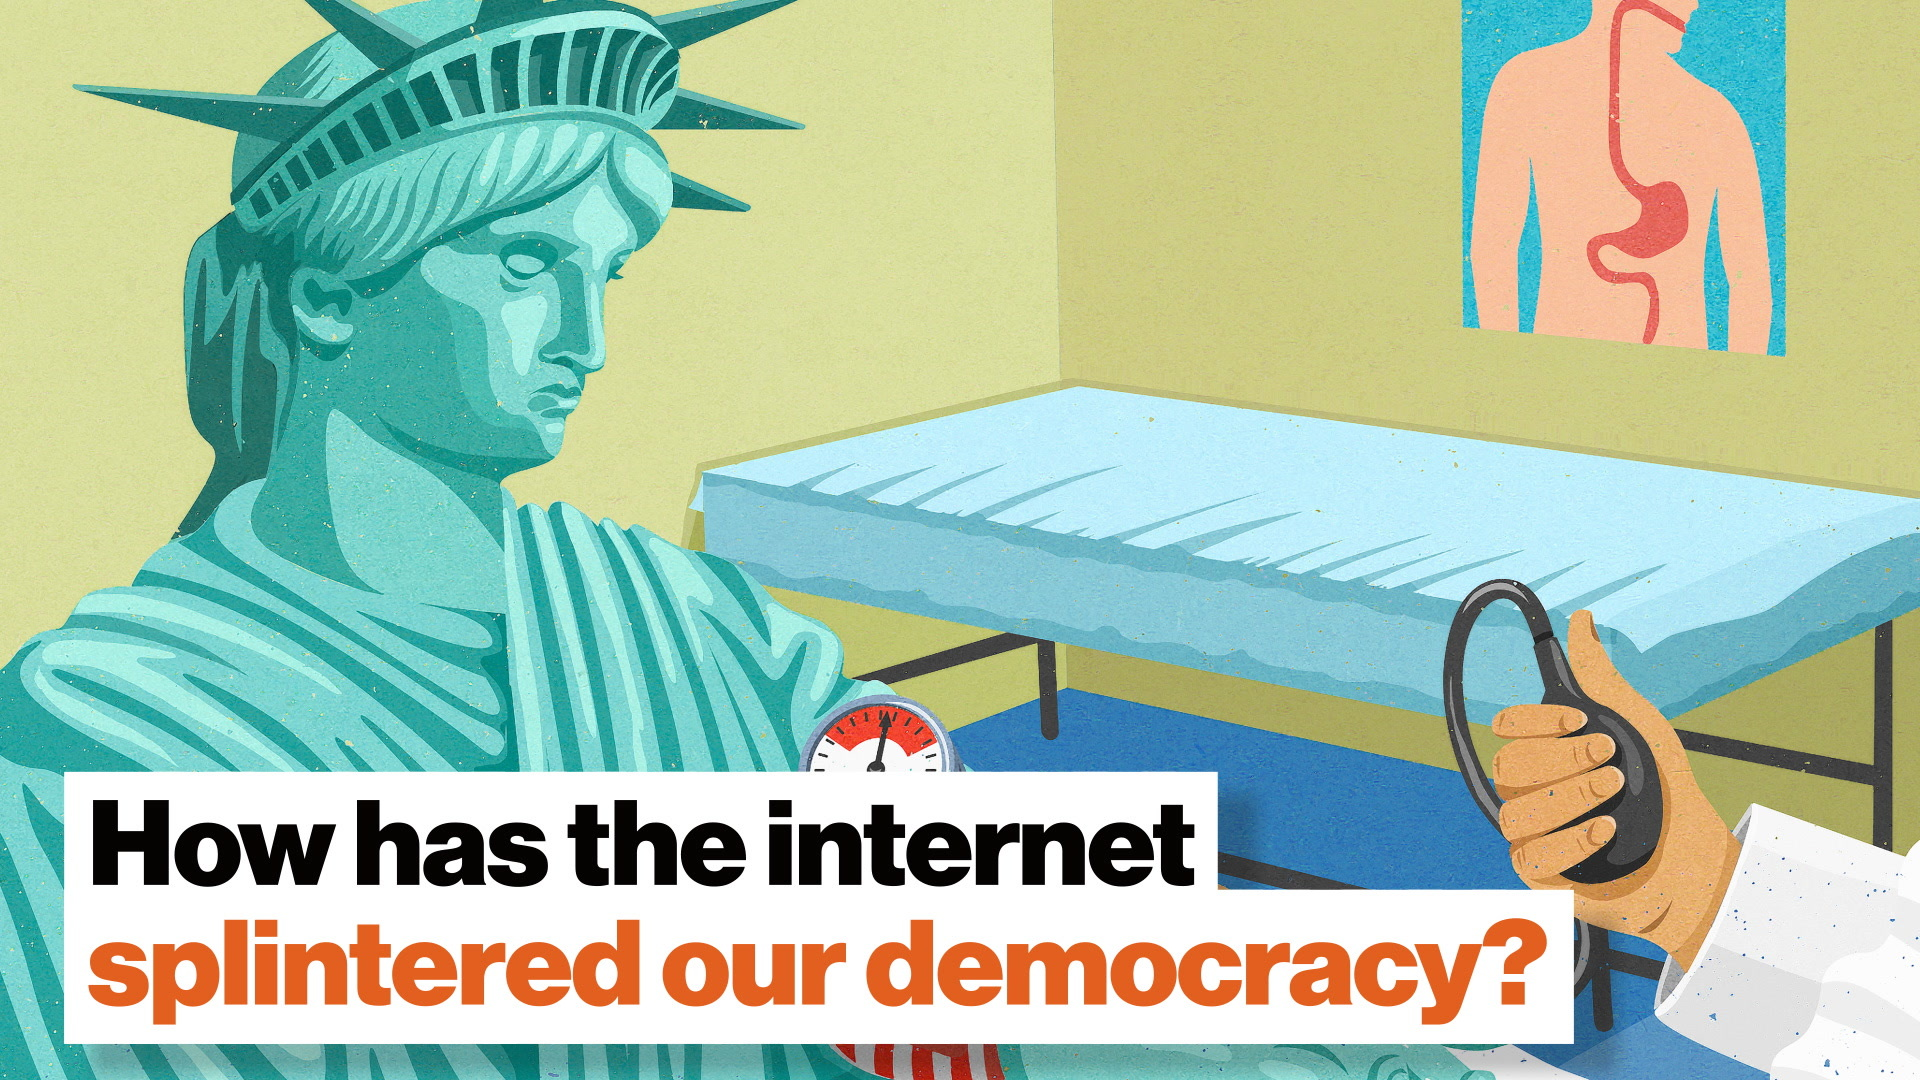 How has the internet splintered our democracy?